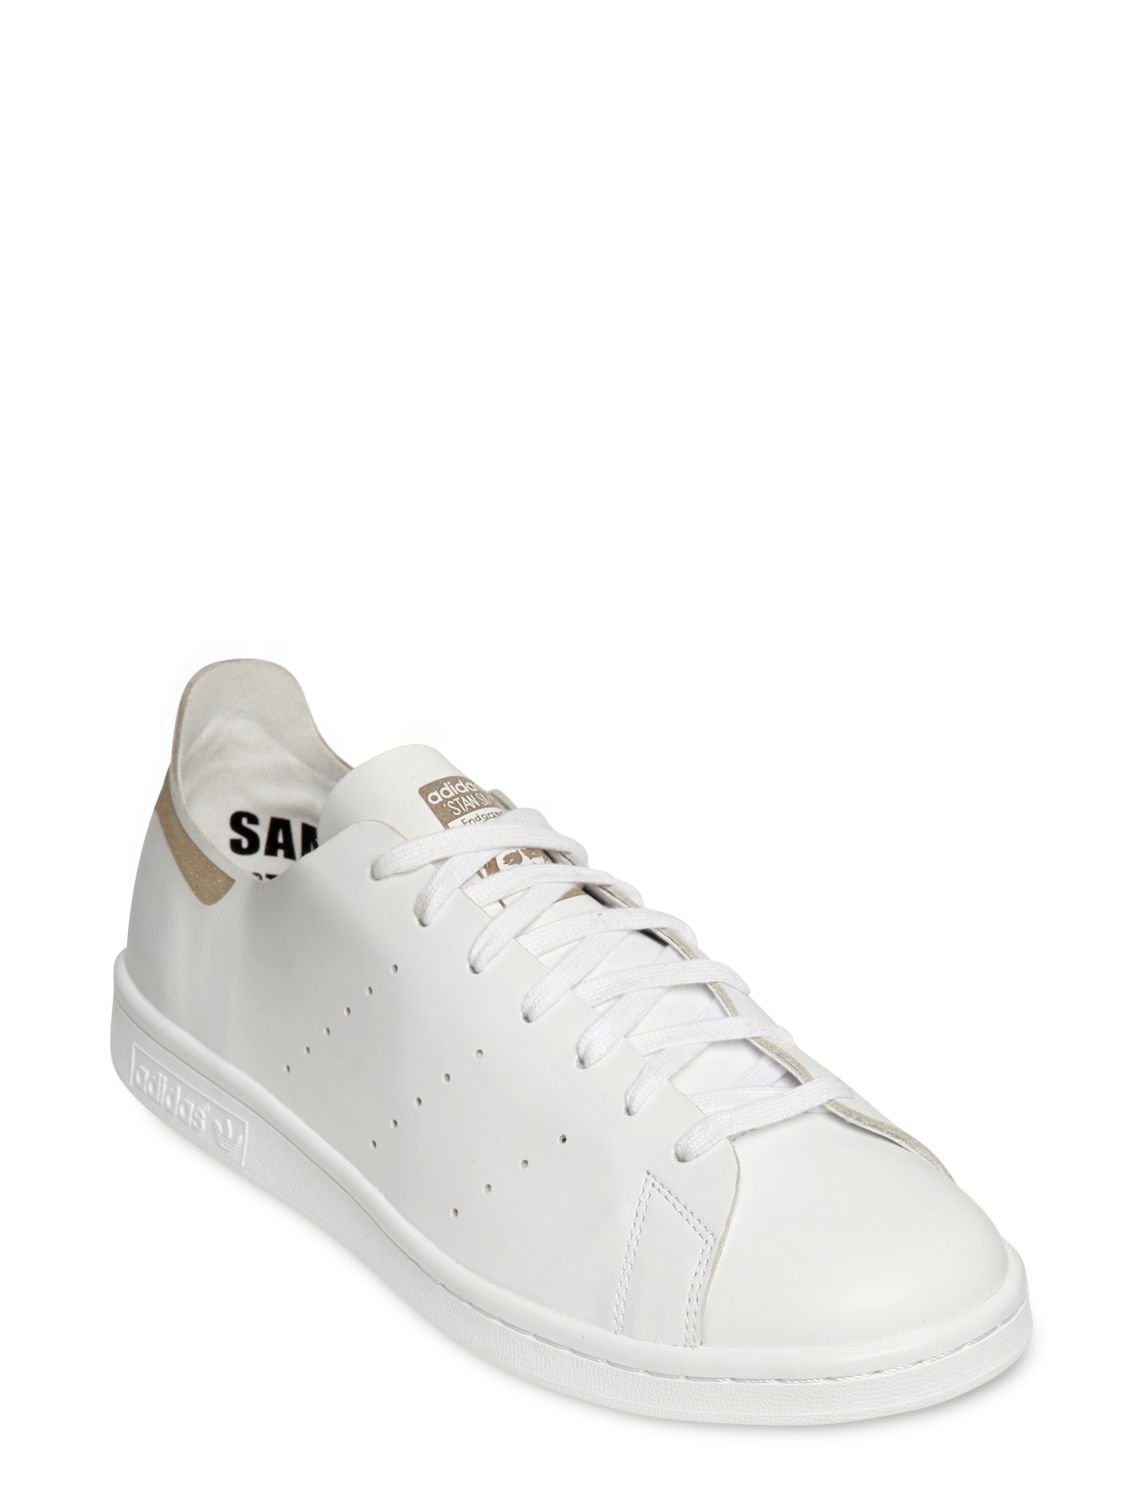 adidas Originals Stan Smith Laser-Cut Leather Sneakers in White ...